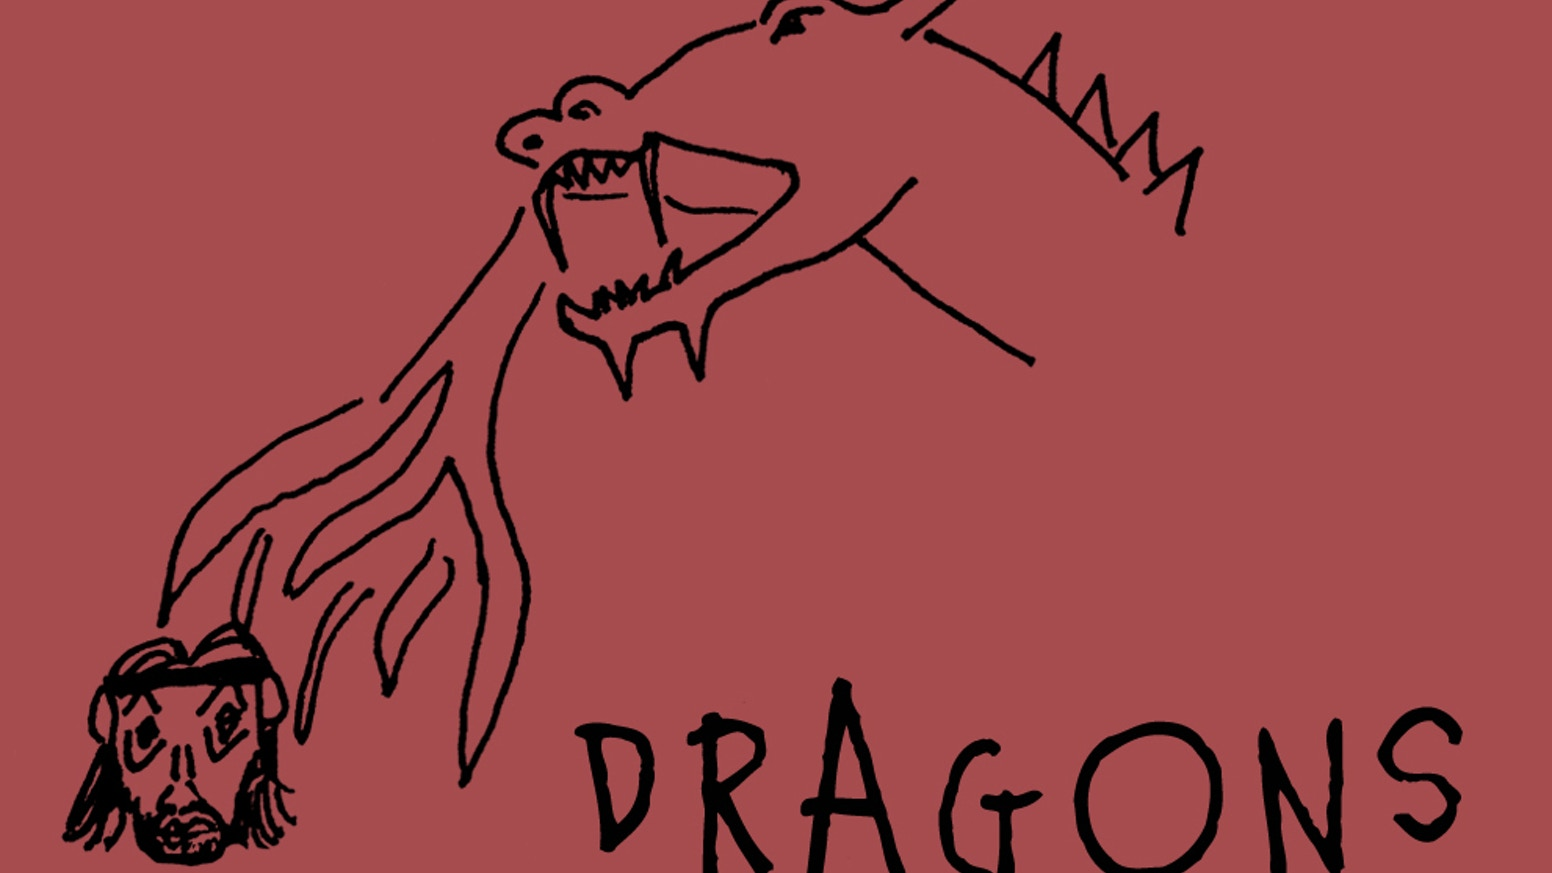 DRAGONS by David Lukasik » DRAGONS designs — Kickstarter